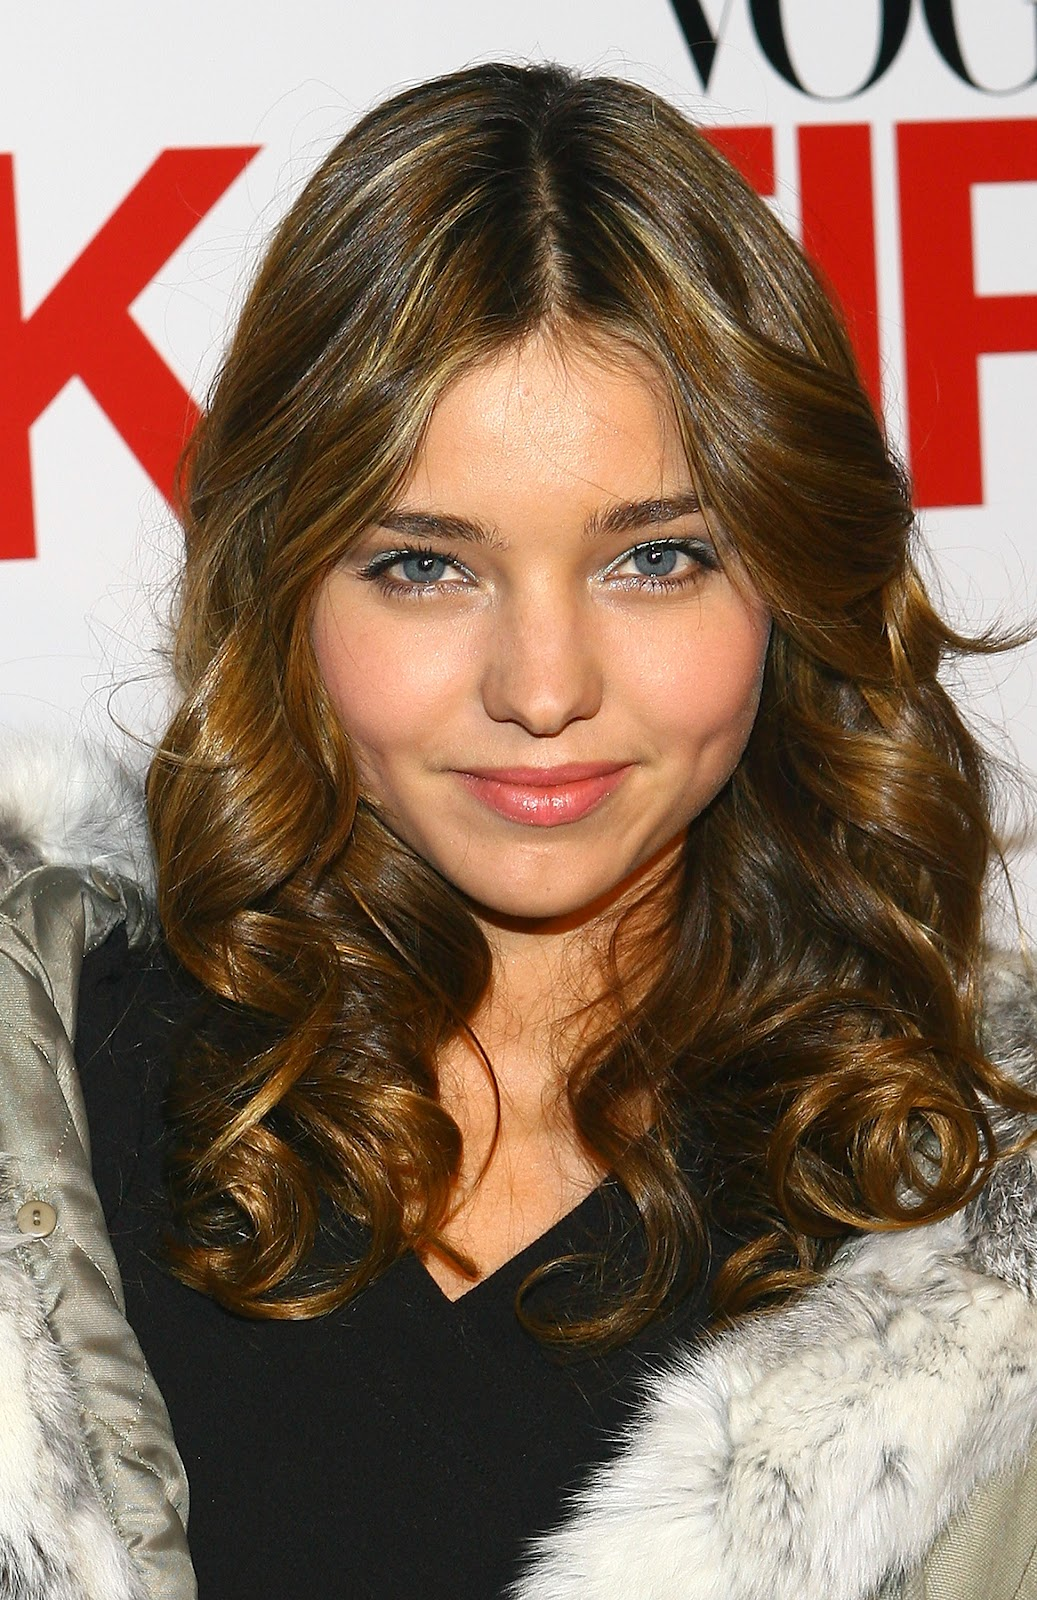 Miranda Kerr S Best Style Looks Ever: Models Inspiration: Miranda Kerr's Hairstyles & Make Up